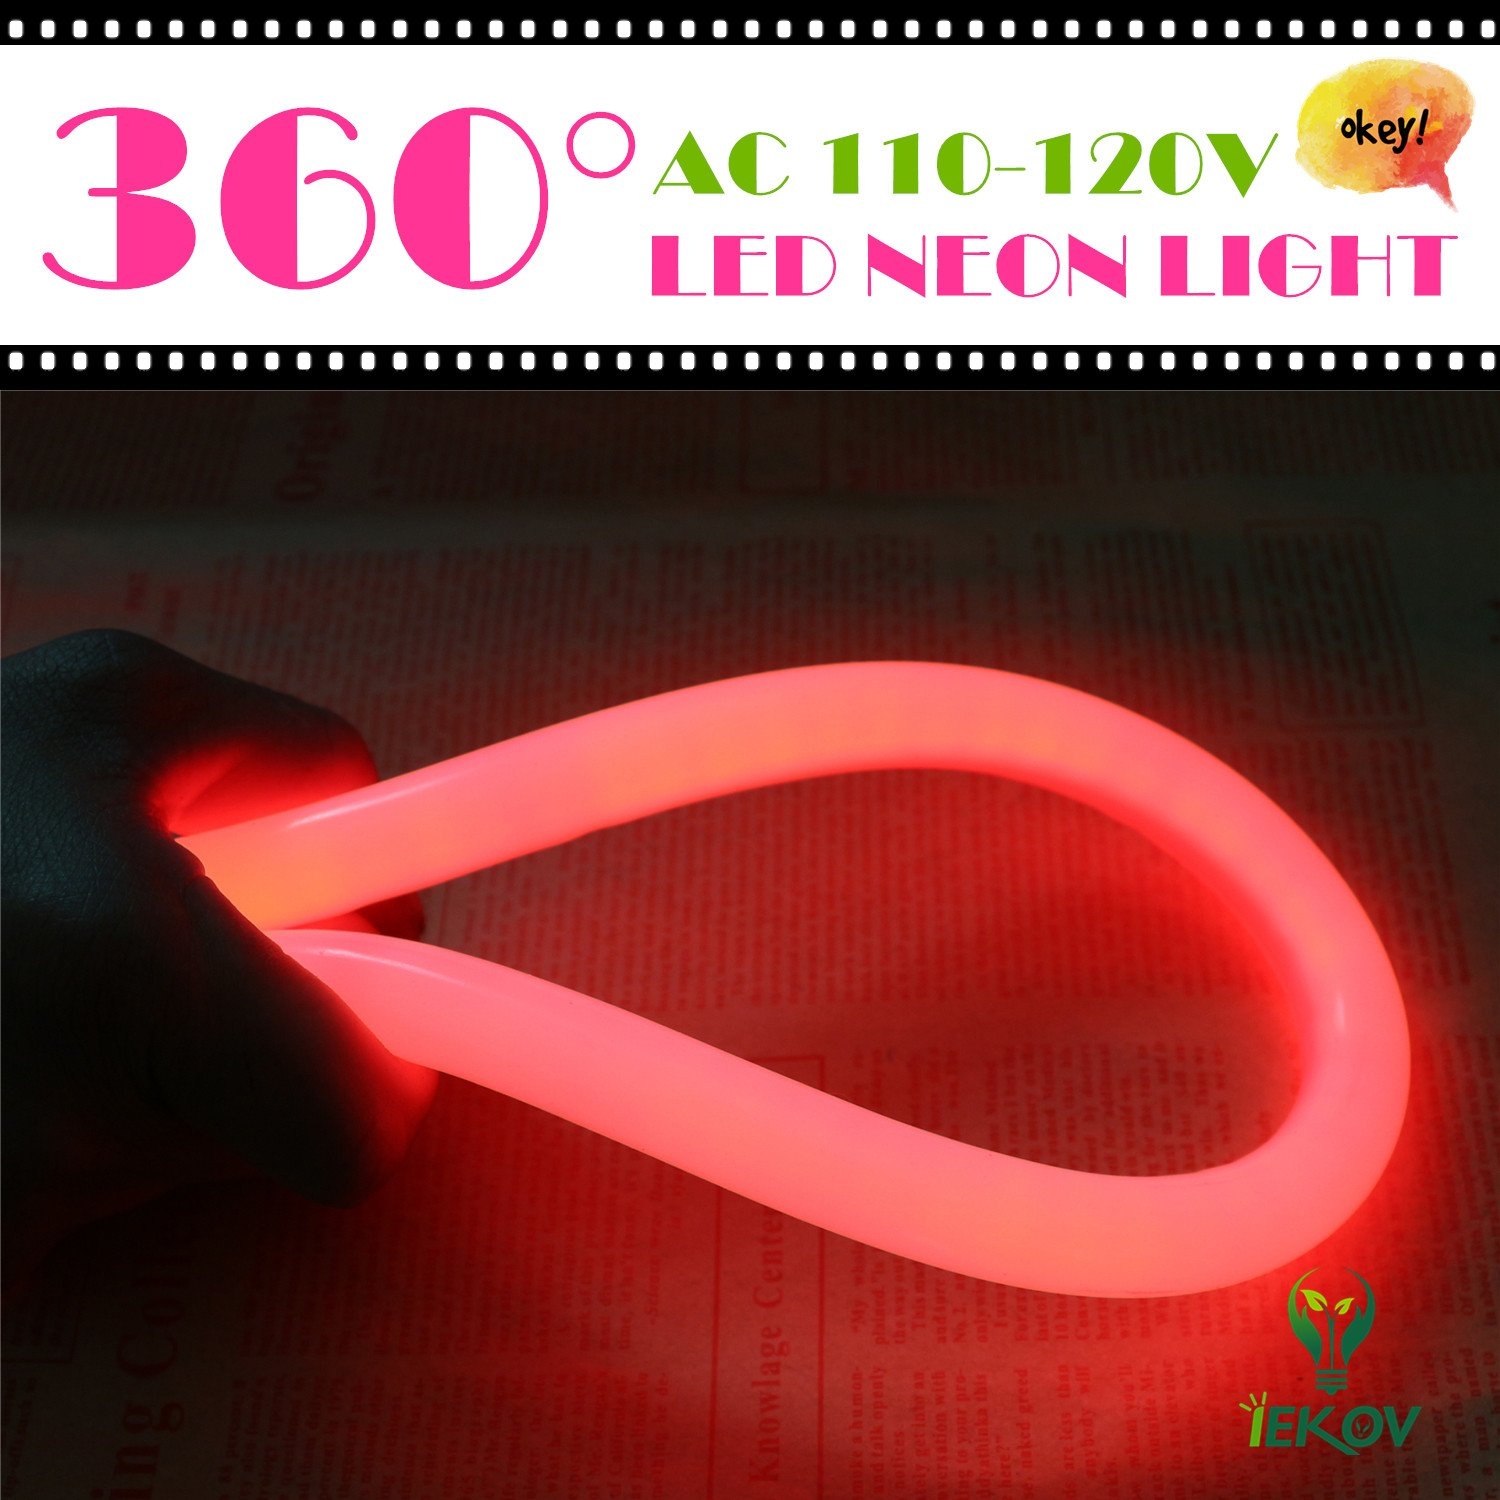 [Upgrade] 360° LED NEON Light, IEKOV™ AC 110-120V Flexible 360 Degree LED Neon Strip Lights, Dimmable & Waterproof NEON LED Rope Light + Remote Controller for Decoration (65.6ft/20m, Red) by IEKOV (Image #2)